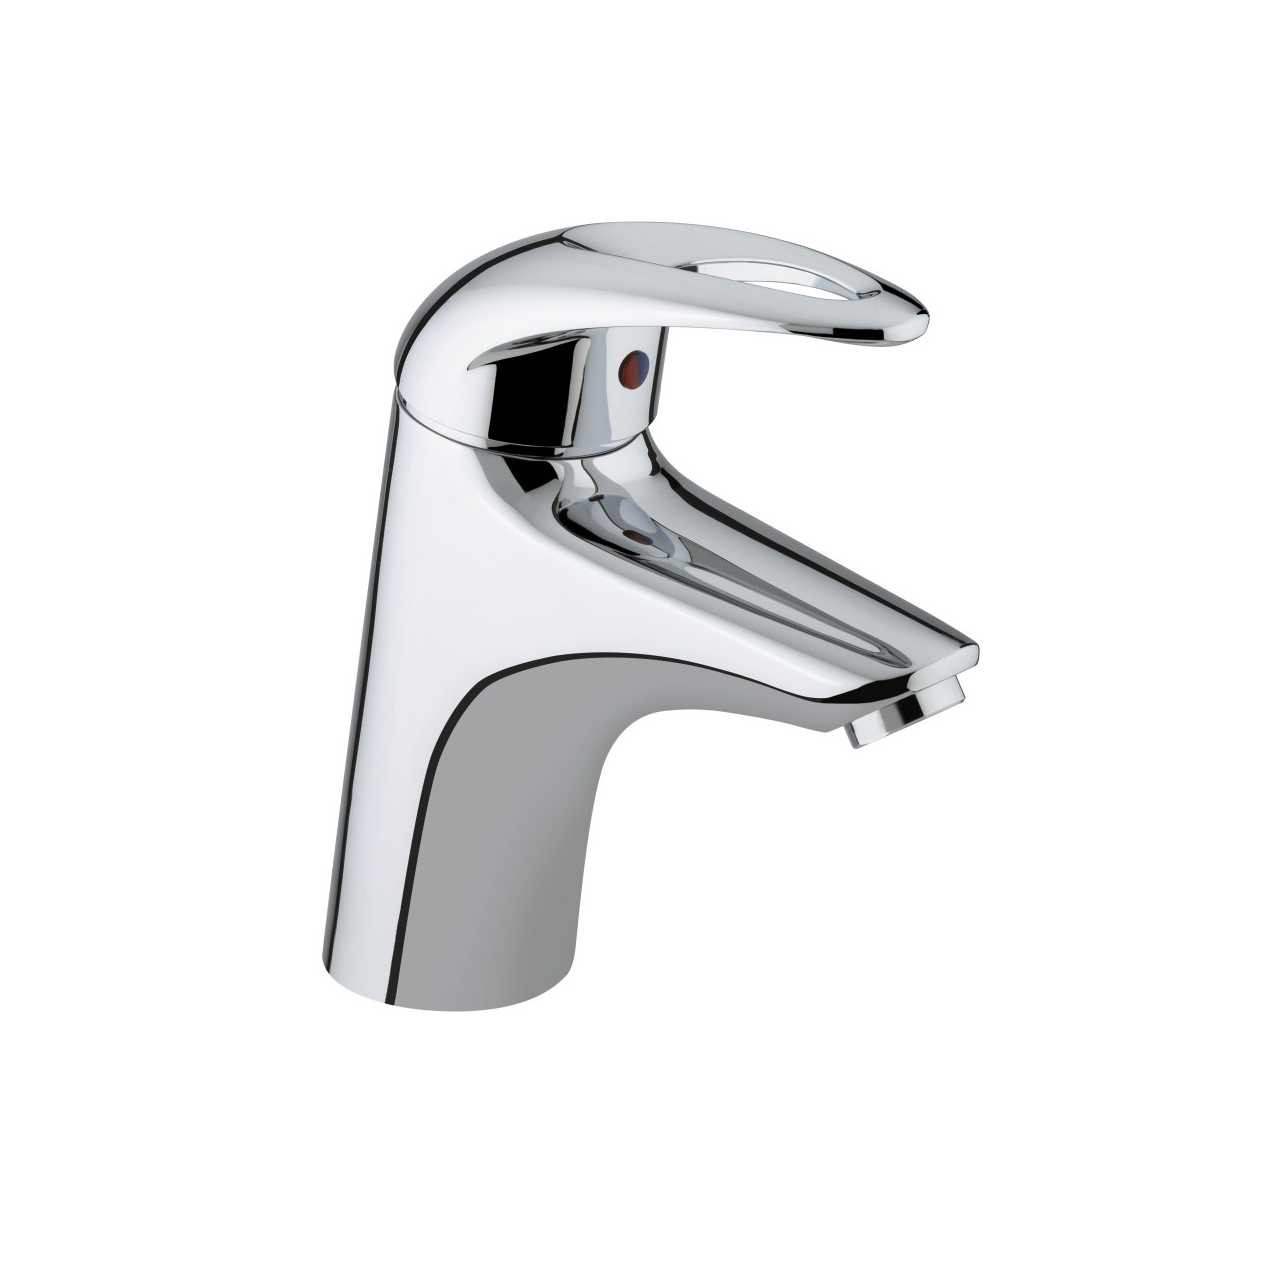 Bristan Java Chrome 1 Tap Hole Bath Filler - J-1HBF-C